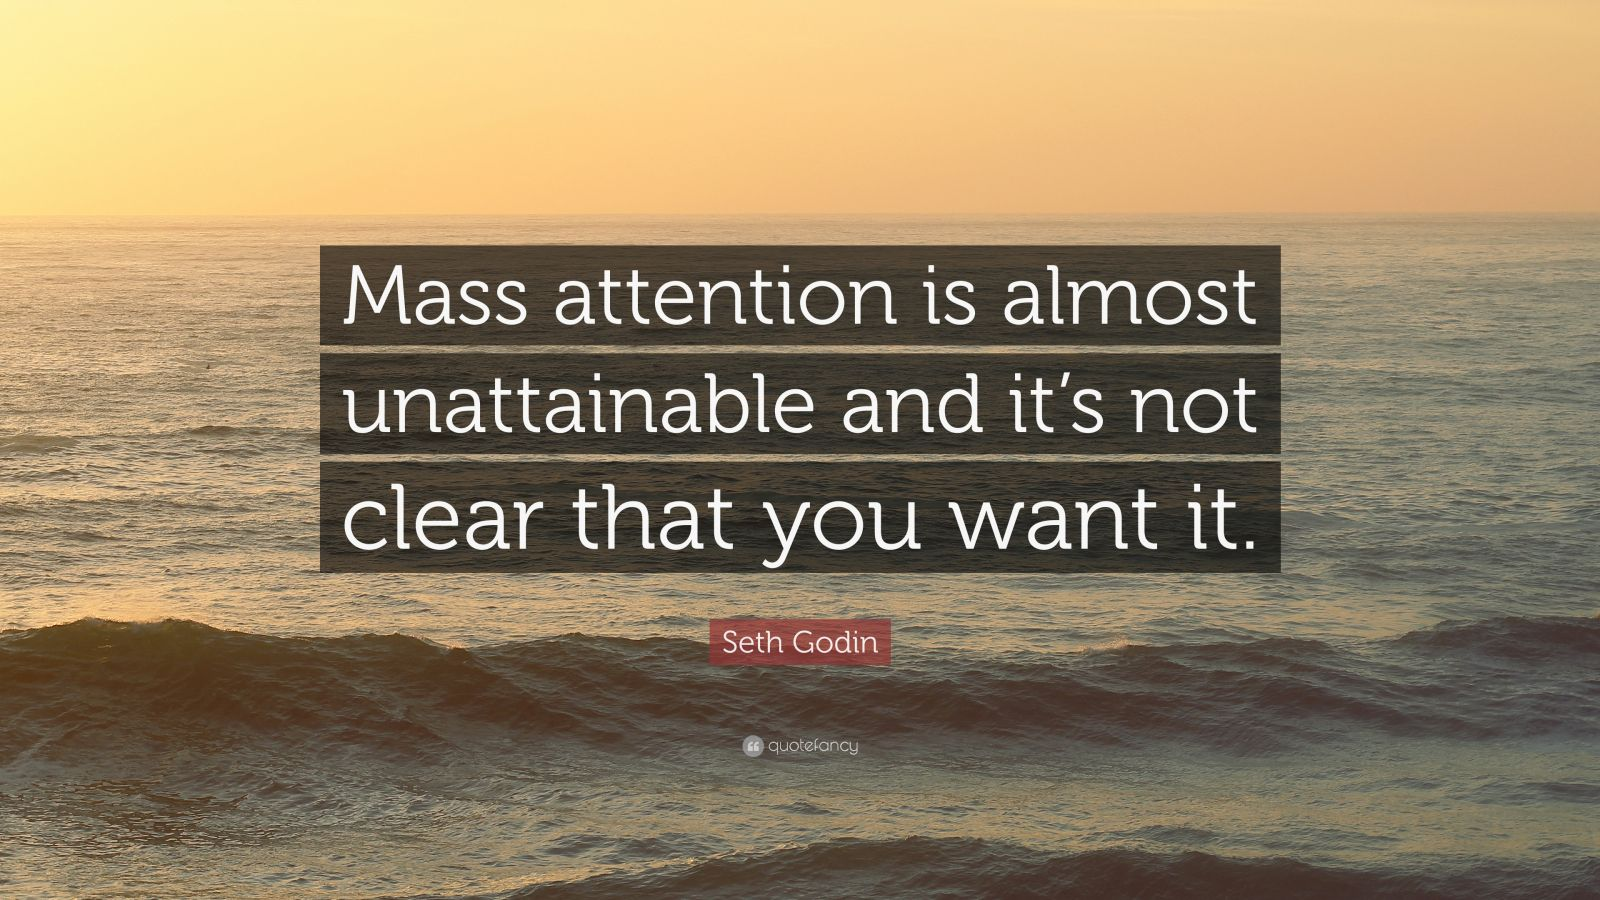 """Seth Godin Quote: """"Mass attention is almost unattainable and it's not clear that you want it."""""""